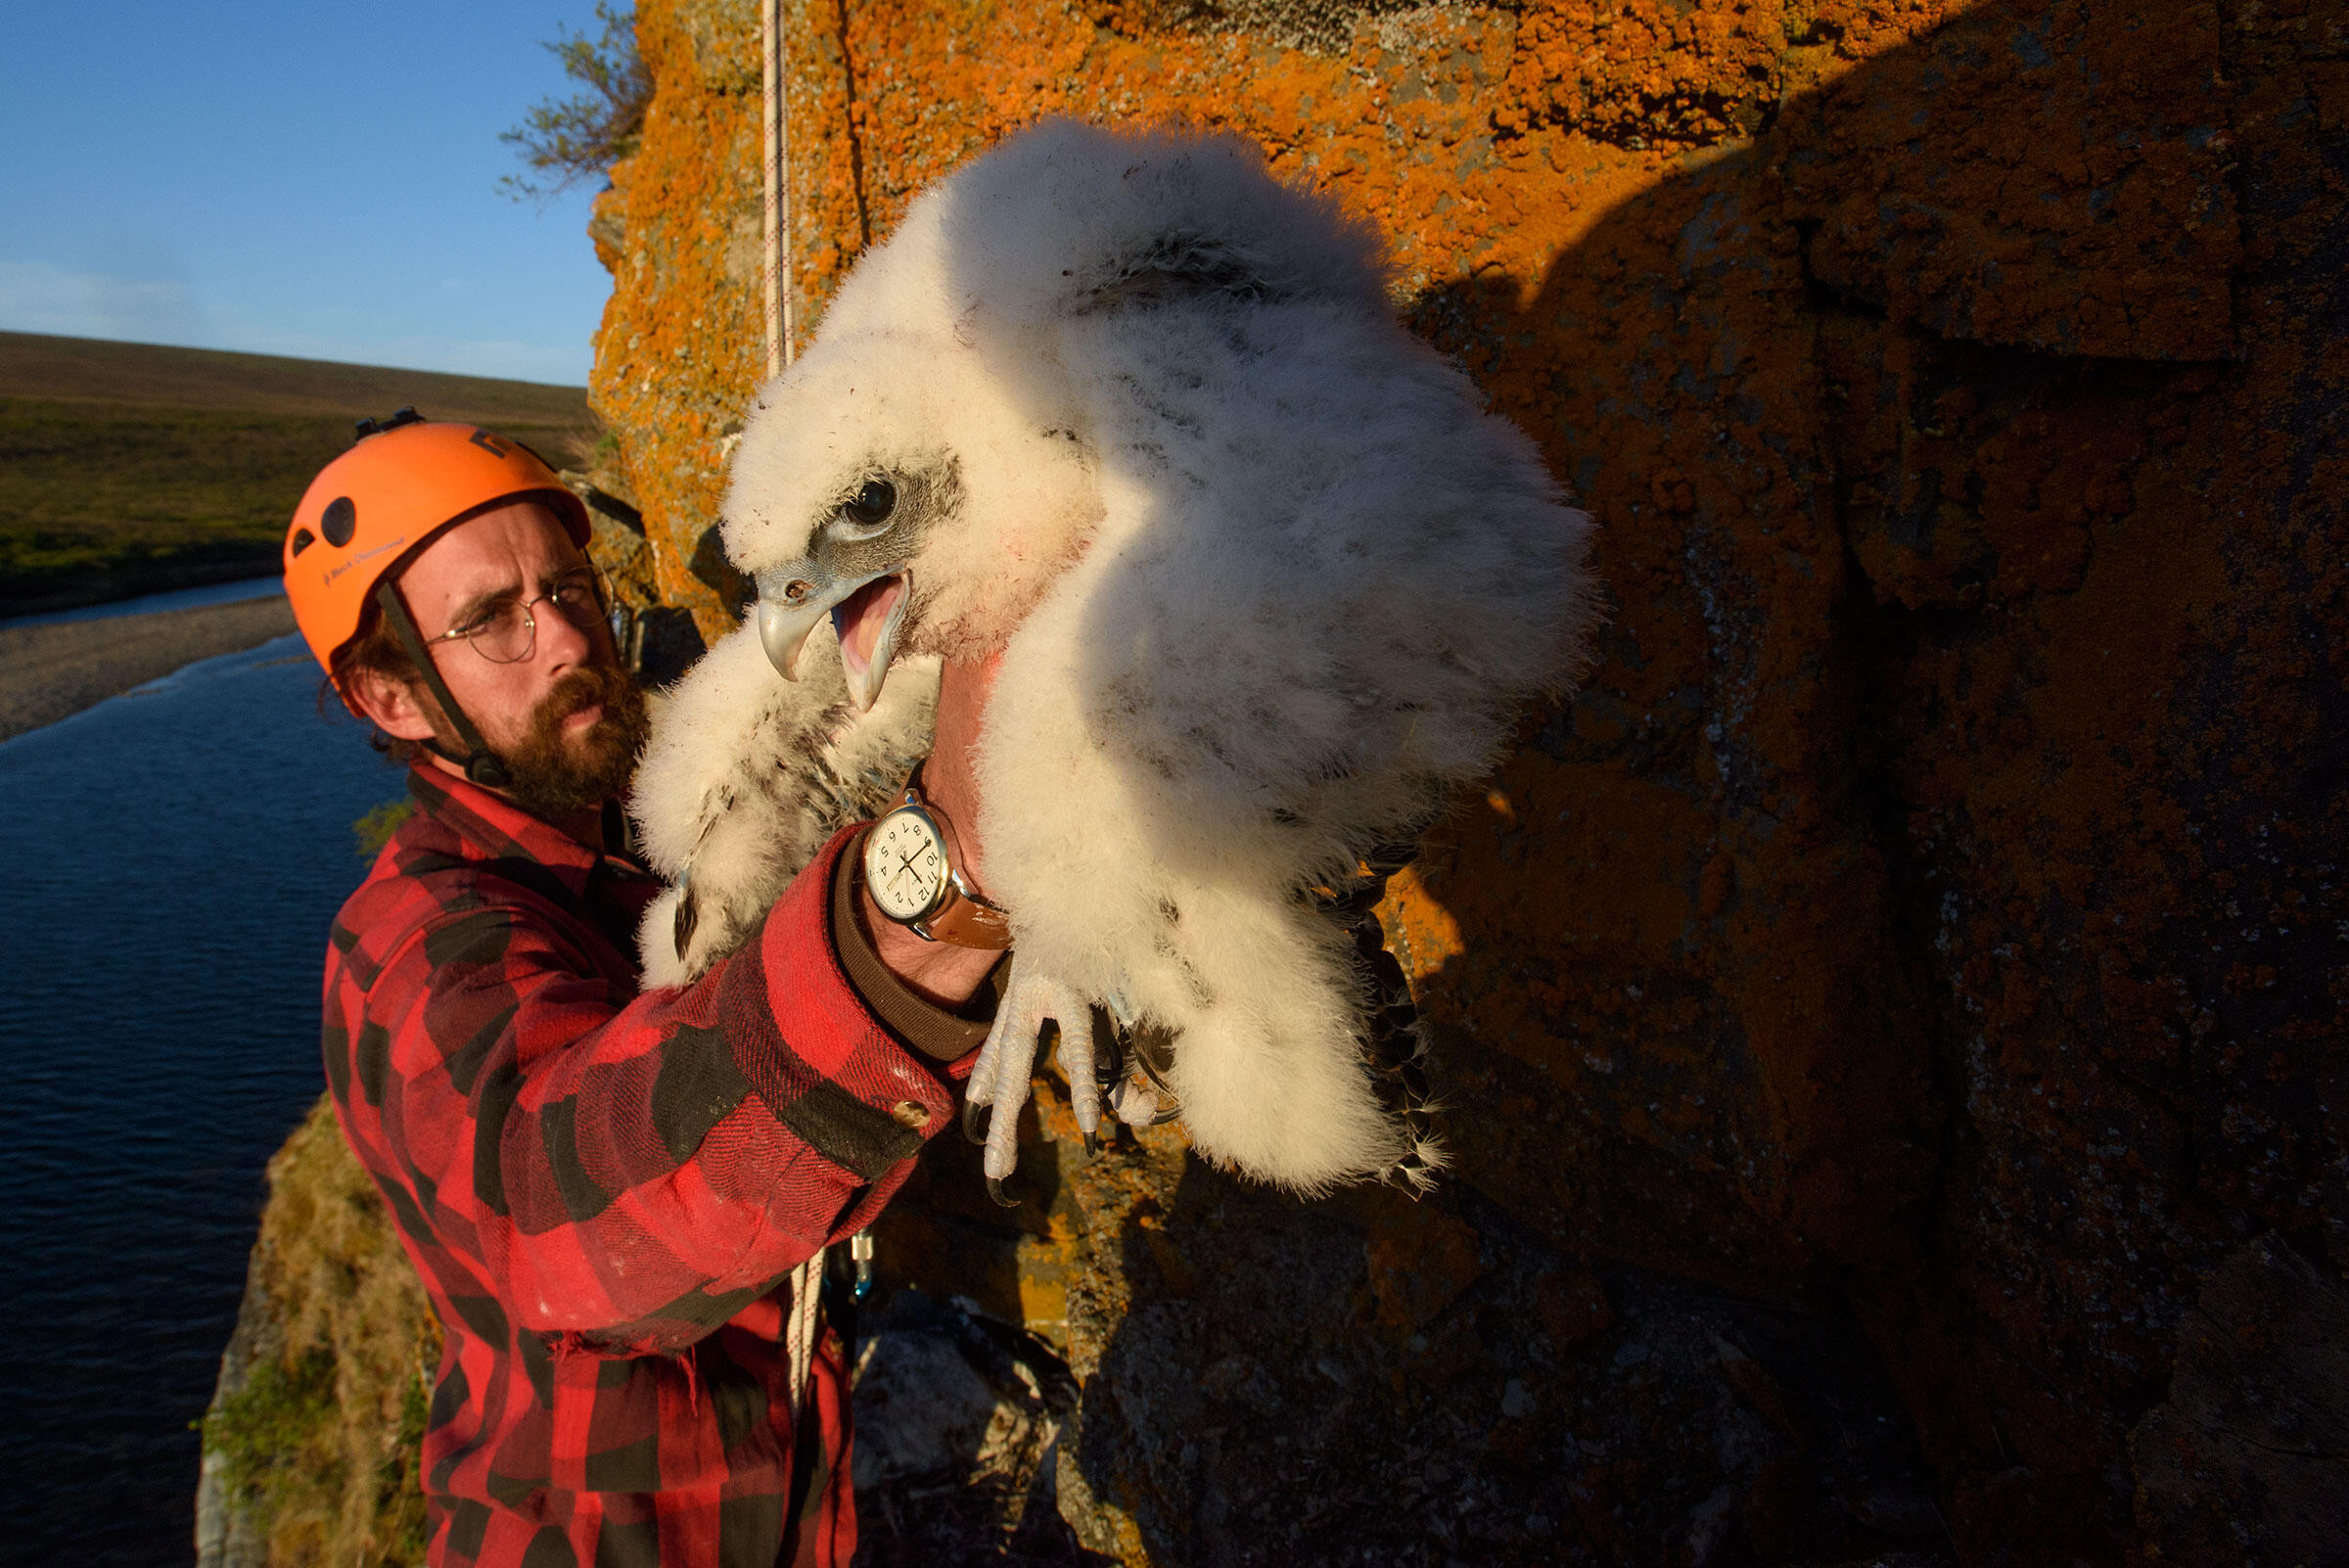 Robinson extracts an unfledged Gyrfalcon from its nest so it can be banded, weighed, and measured. His Gyr study is the largest ever conducted. Gerrit Vyn